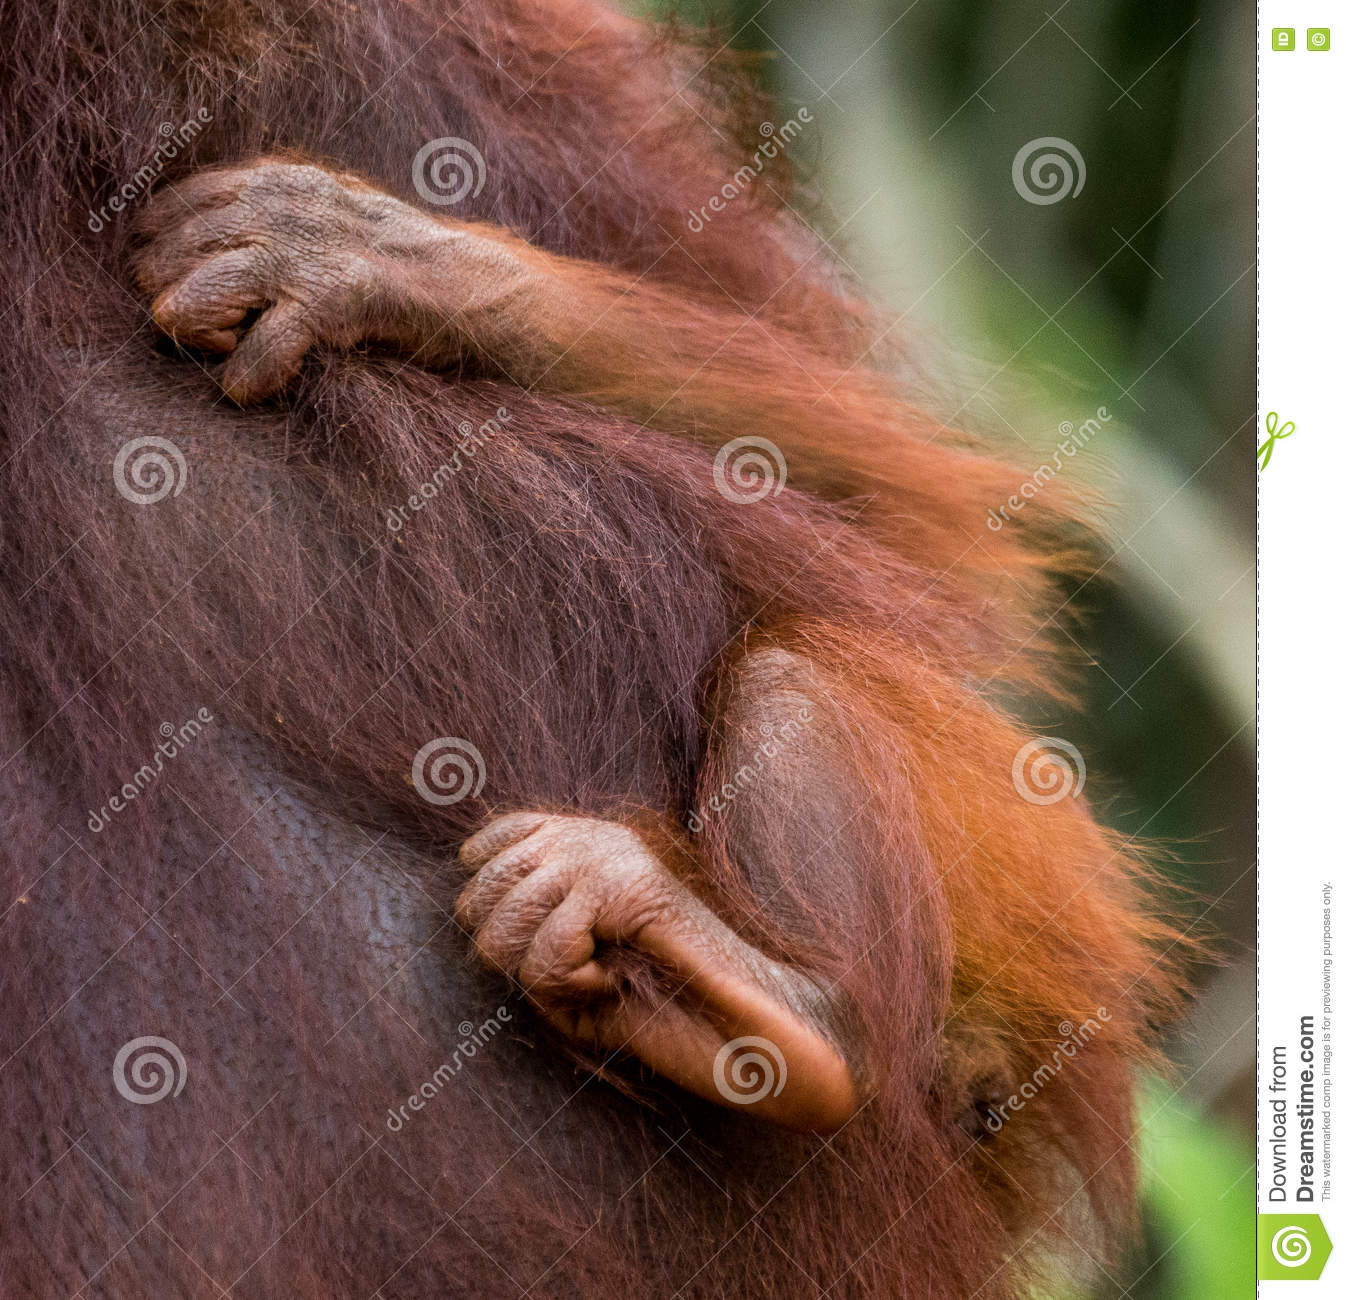 Detail of the front hand orangutan. Close-up. Indonesia. The island of Kalimantan Borneo.